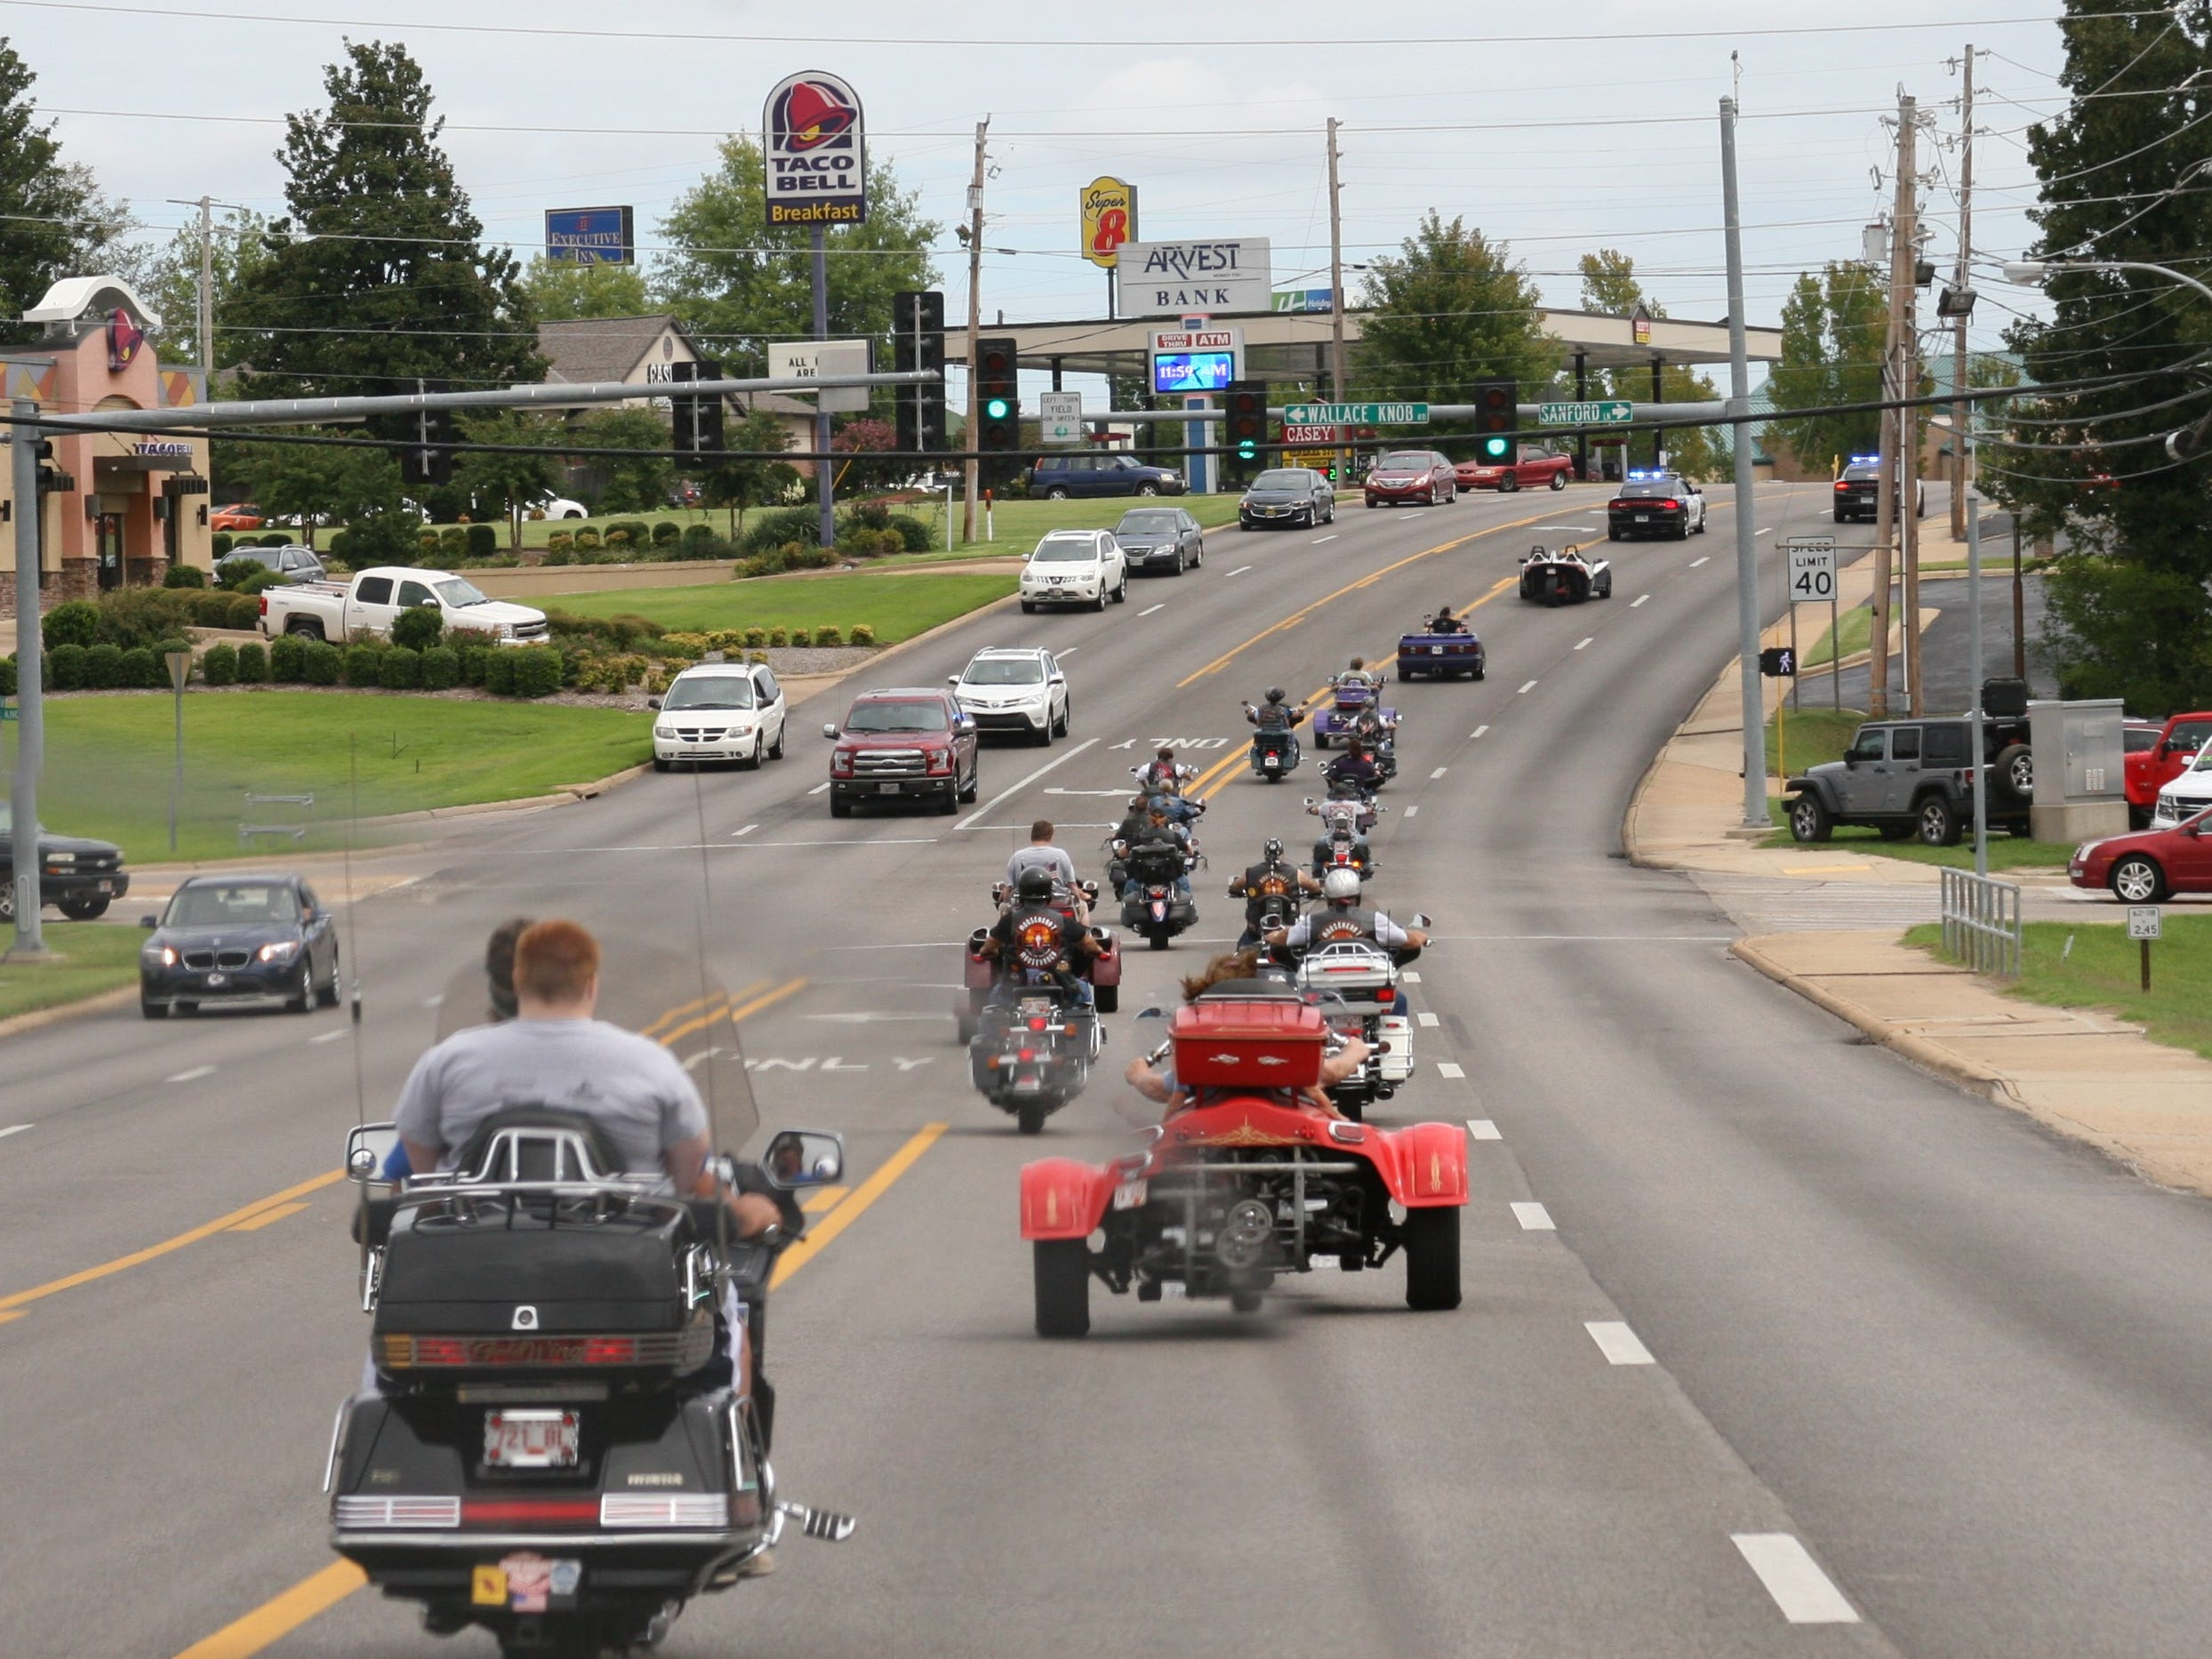 Riders came from several area clubs on Wednesday, such as Three Rivers Biker Church in Gamaliel, Mooseheart, the American Legion of Cotter, and Brother All the Dirt, along with other individual riders to participate in a community ride to support 94-year-old Dora Uelmann.